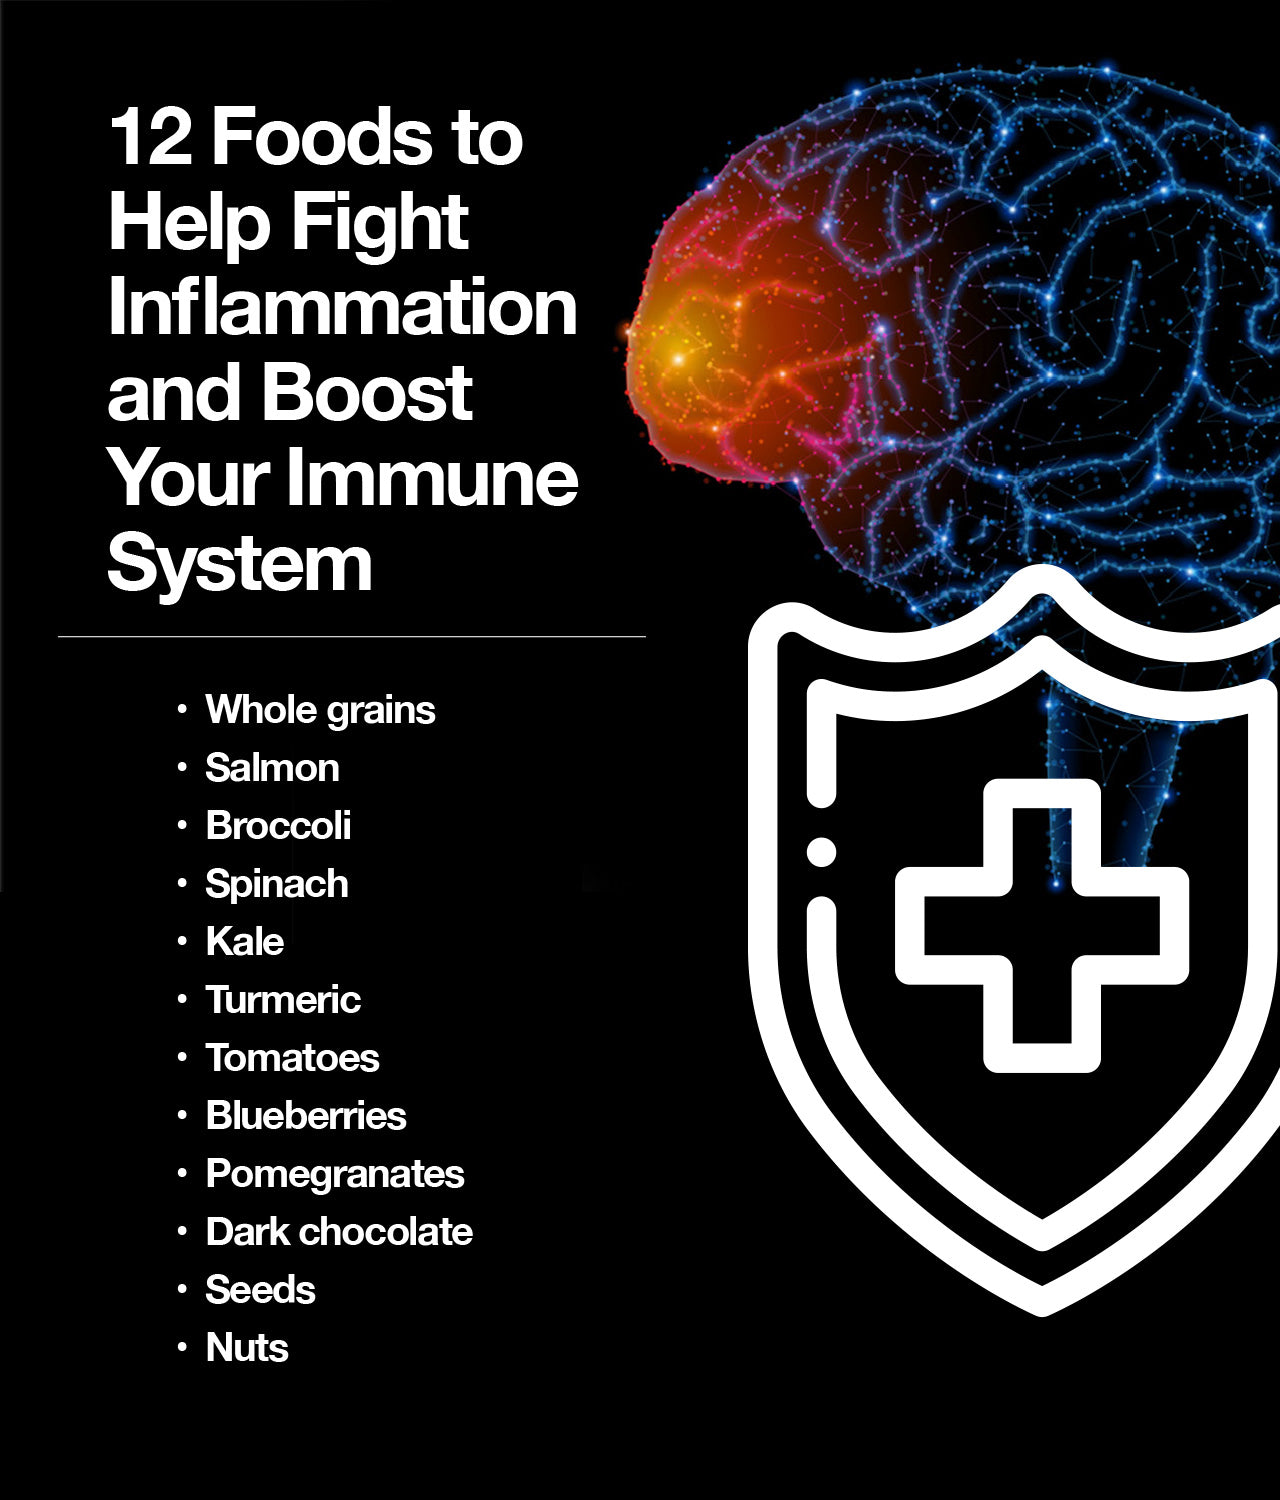 Foods for inflammation and immunity